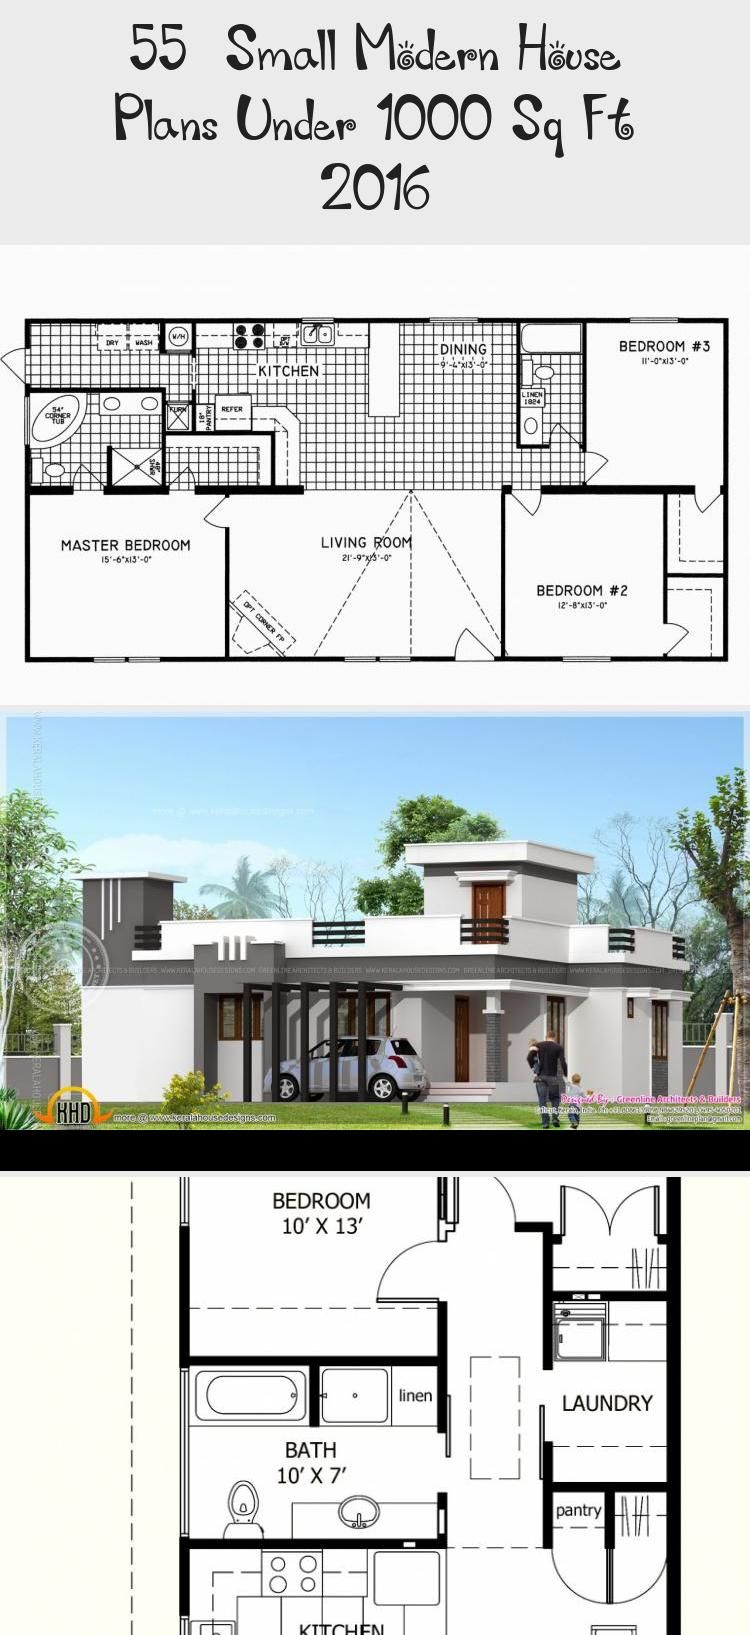 50 Small Modern House Plans Under 1000 Sq Ft 2019 Modernhousesketchinspiration Modernhousesketcharchit Small Modern House Plans Small Modern Home House Plans